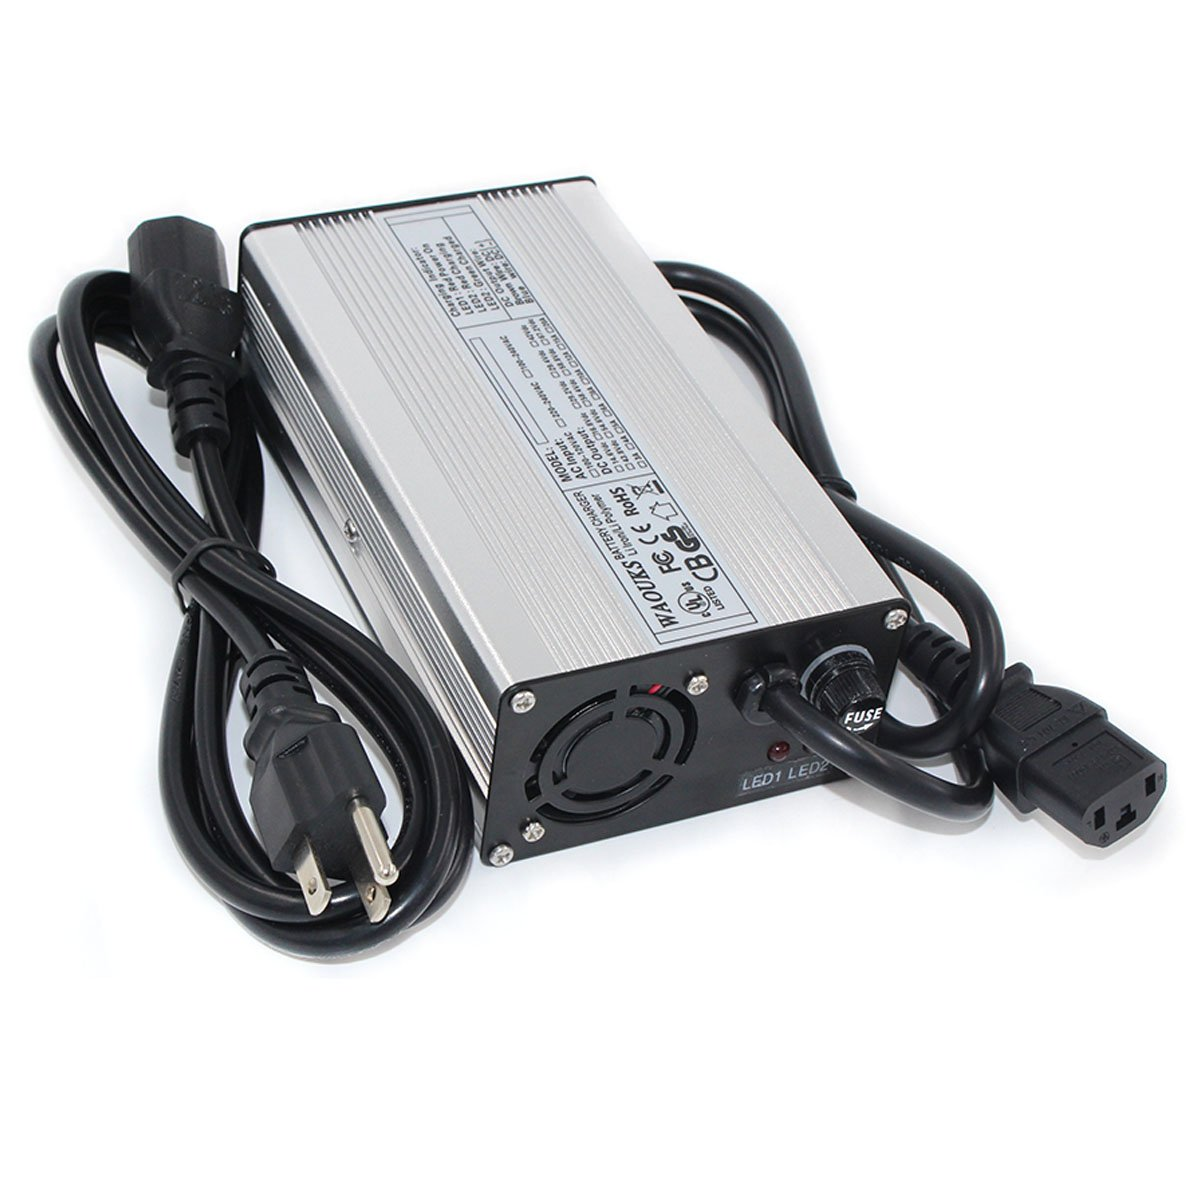 WAOUKS 72V 3A Charger 82.8V Lead Acid Battery Charger for E-Bike Battery Float Charge 88.2V Auto-Stop Smart Charge DONGGUAN WATE ELECTRONICS CO. LTD WATE-7203S